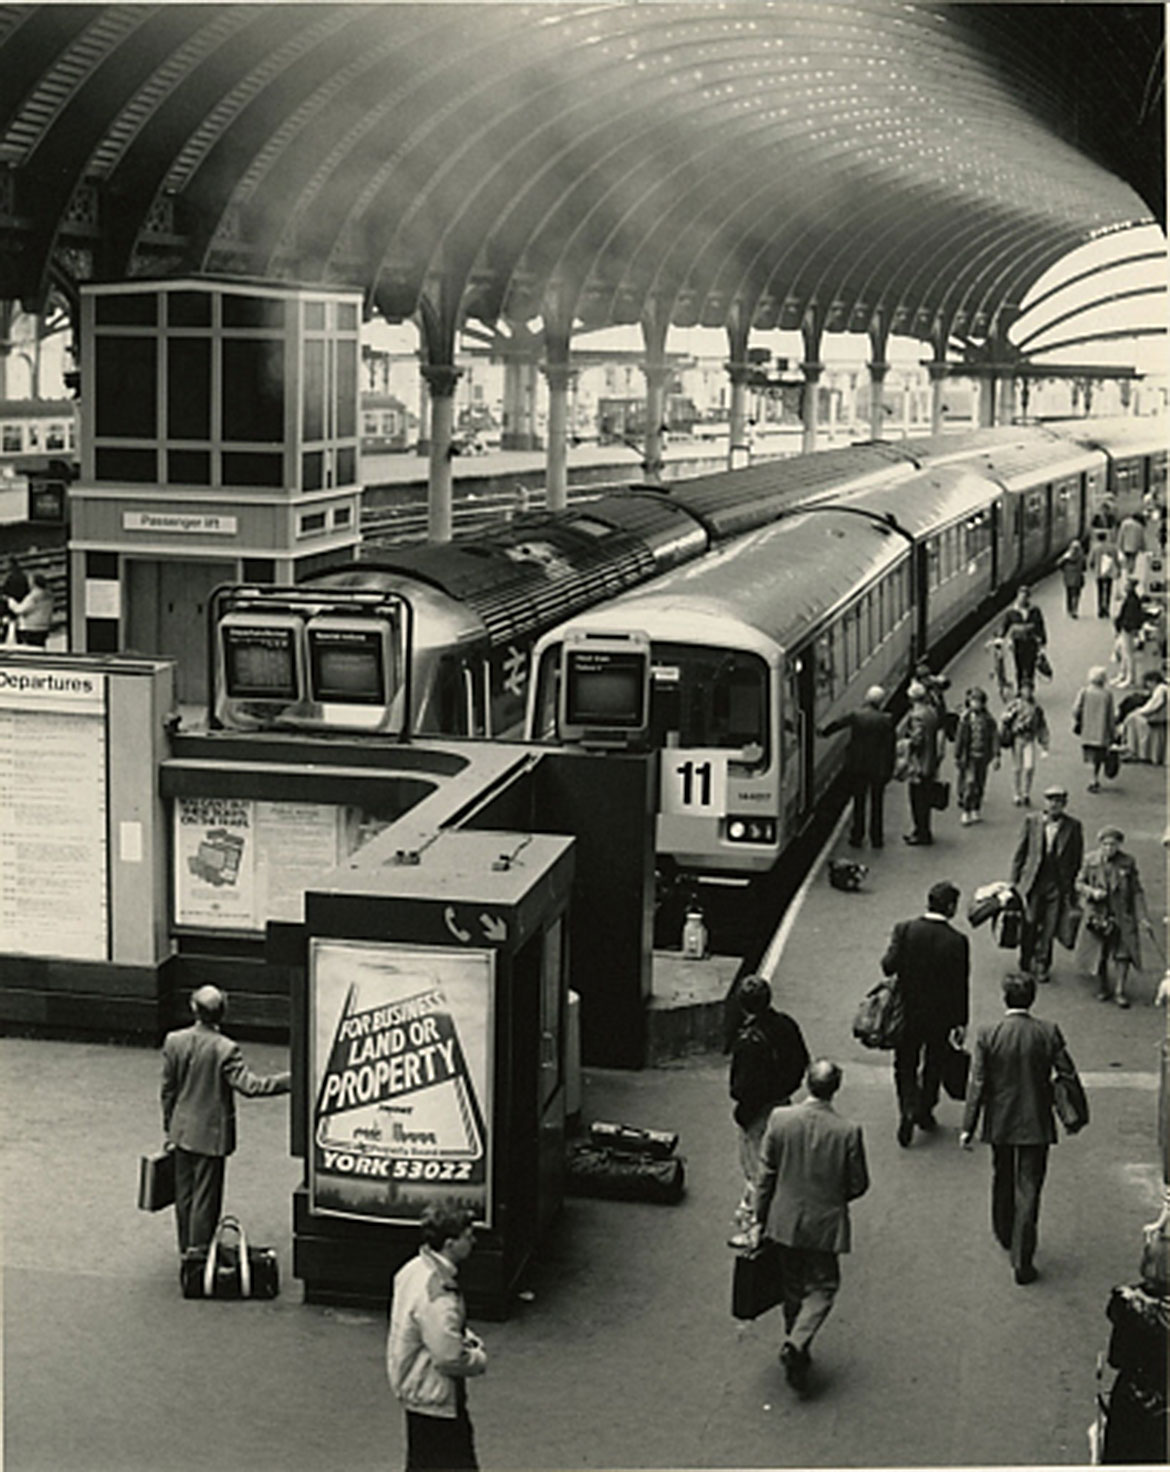 Coming into the modern era, York station in 1987